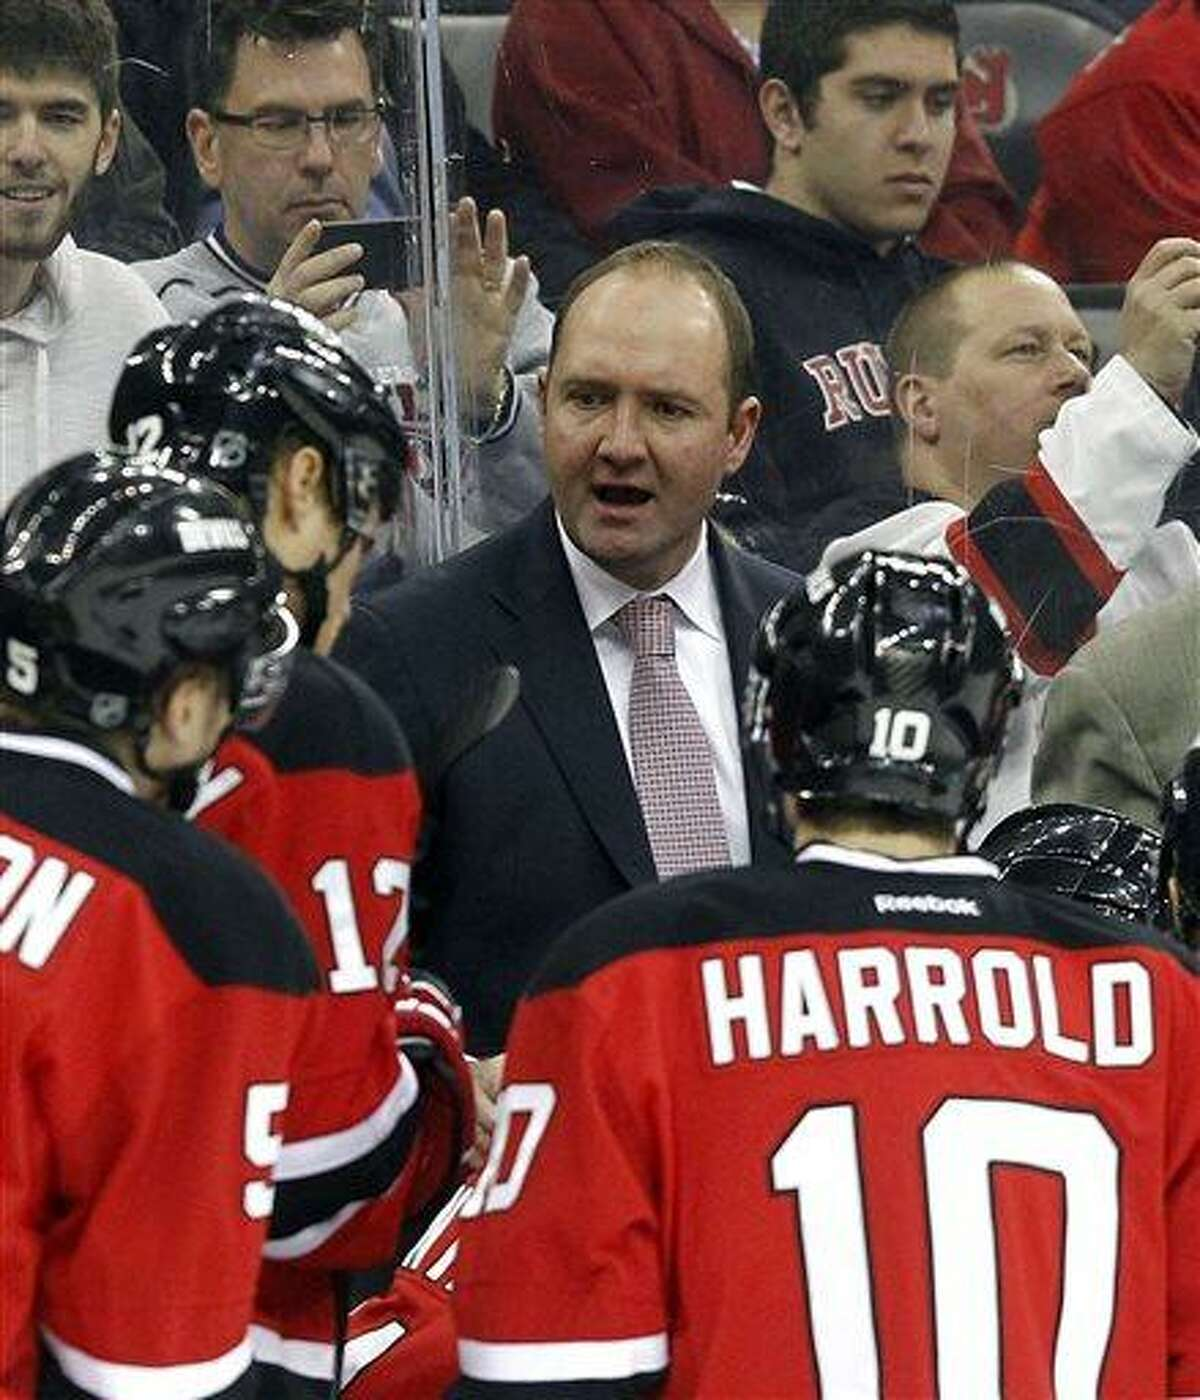 FILE - In this April 20, 2013 file photo, New Jersey Devils head coach Peter DeBoer talks to his team during the first period of an NHL hockey game against the Florida Panthers in Newark, N.J. While caught off guard by star forward Ilya Kovalchuk's decision to retire from the NHL and return home to Russia, New Jersey Devils coach DeBoer said his team's job next season is to play well enough to make up for the loss of one of the NHL's top players. (AP Photo/Jason DeCrow, File)